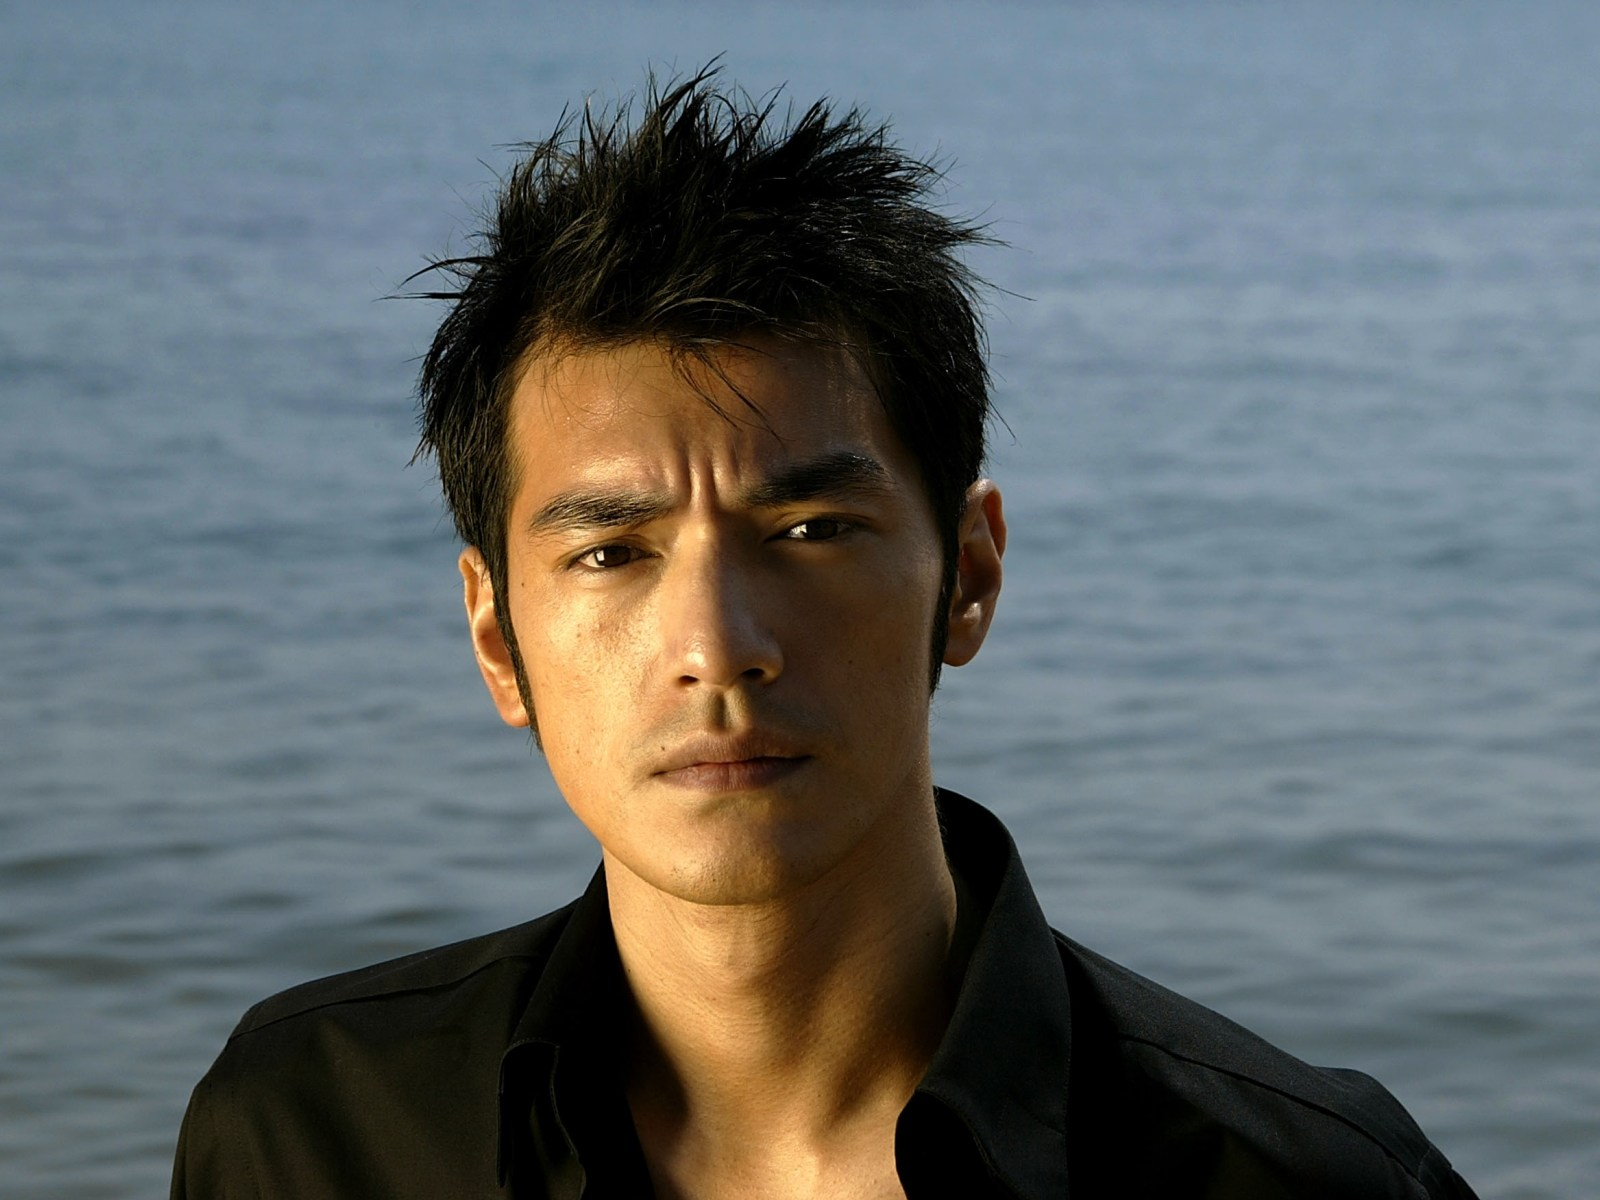 kaneshiro takeshi dating website Promote your website, fanfics etc  taiwan star dylan kuo not afraid of losing fans  he is also said to be japanese-taiwanese dreamboat takeshi kaneshiro's.